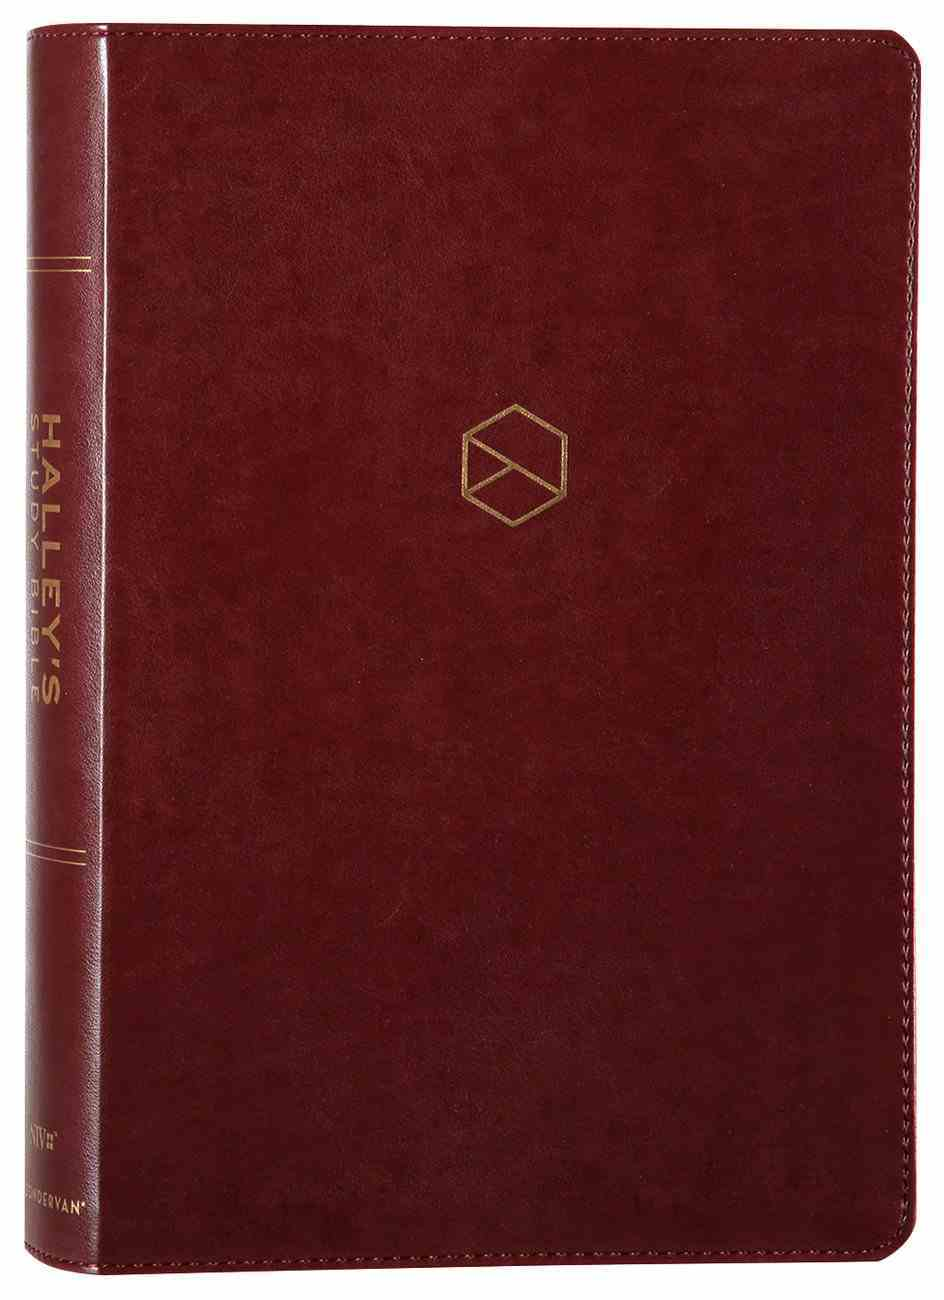 NIV Halley's Study Bible Burgundy (Red Letter Edition) Premium Imitation Leather